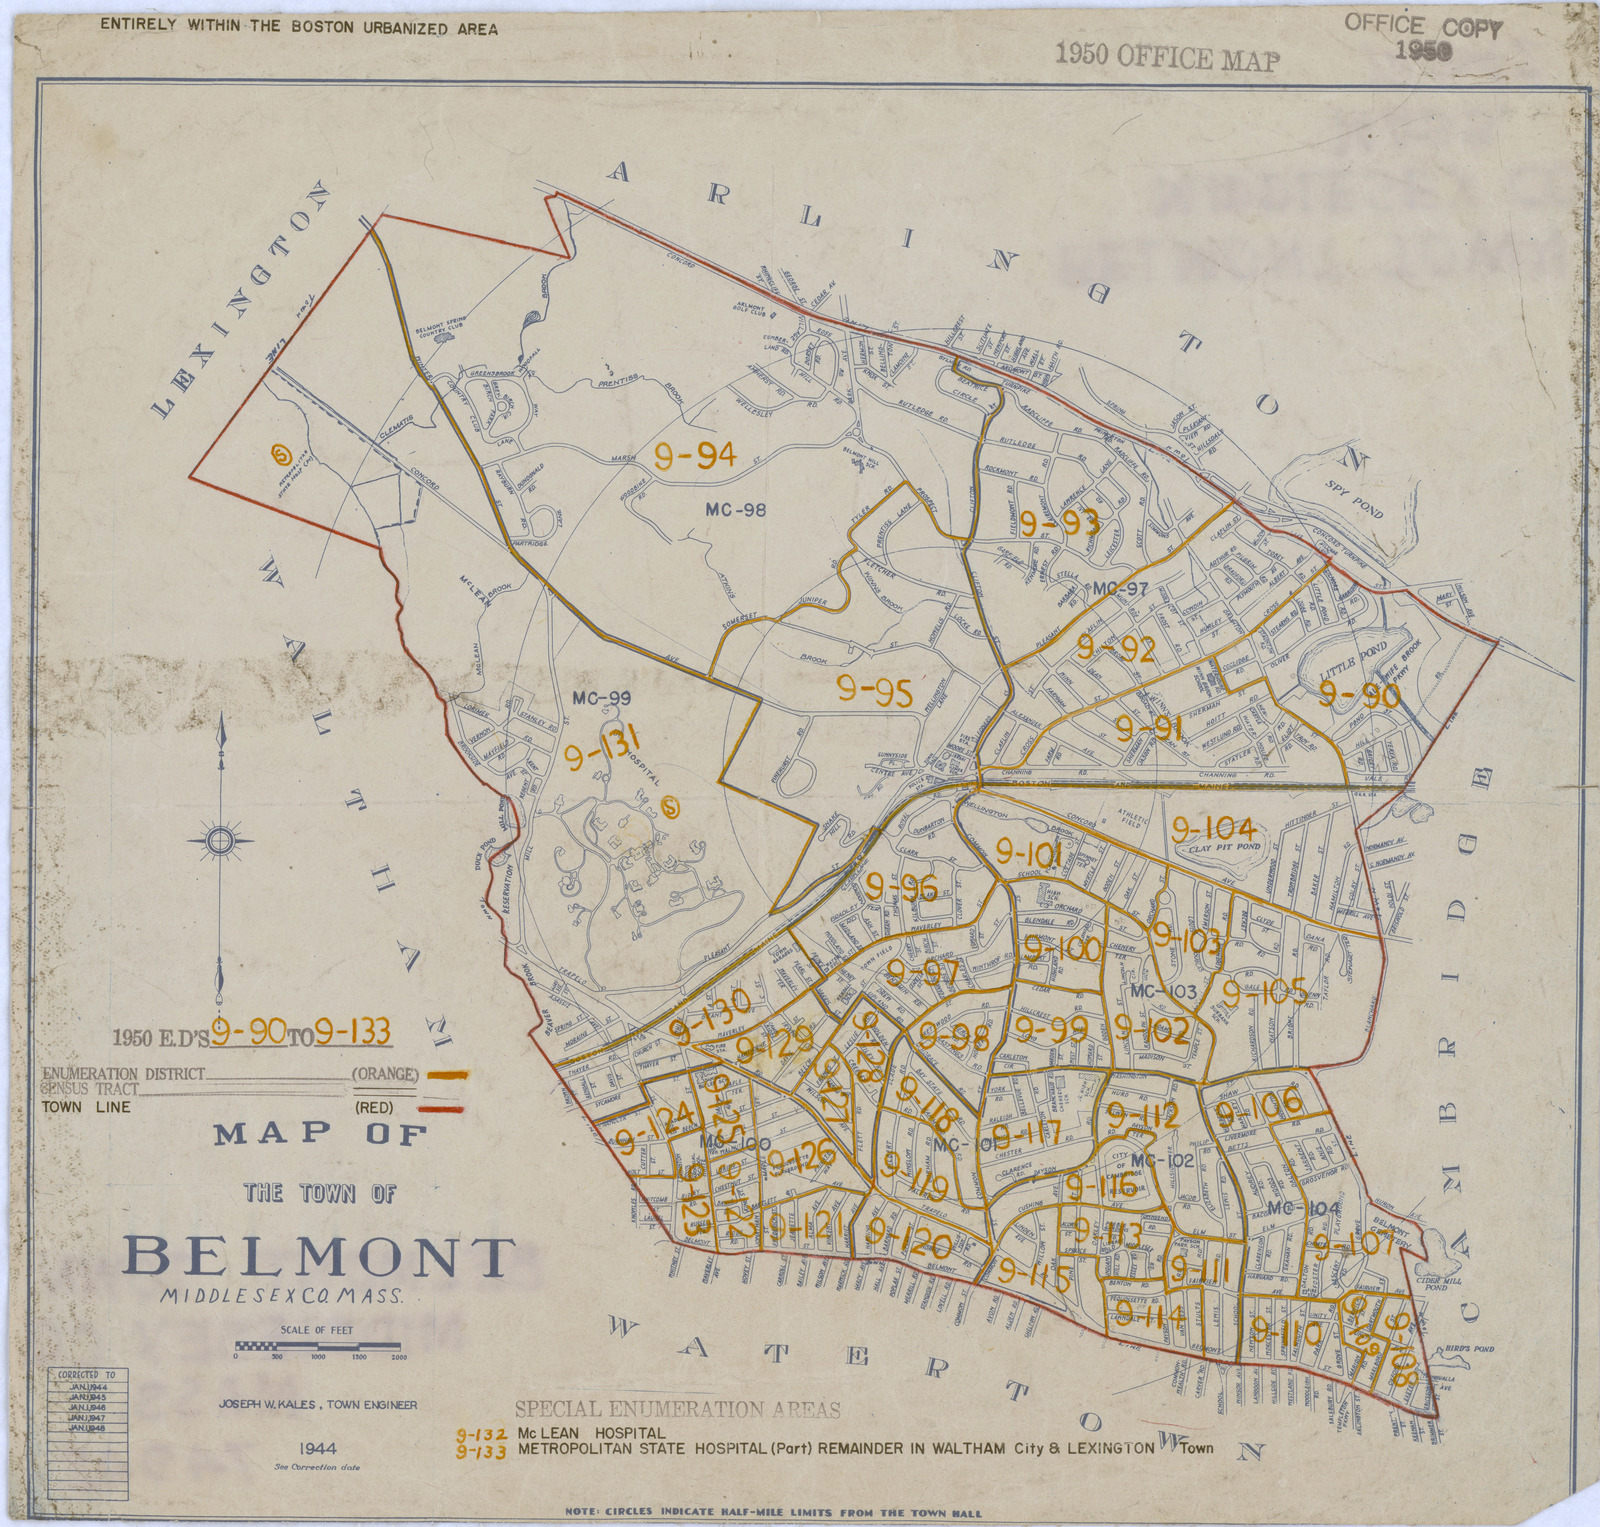 1950 Census Enumeration District Maps - Machusetts (MA ... on ma region map, ma physical map, haverhill ma map, middleton ma map, ma on a map, massachusetts map, ma topographical map, ma world map, ma utility map, ma highway map, ma island map, ma town map, ma state parks map, ma on us map, ma city map, ma elevation map, ma zip code map, essex ma map, ma state police troop map, old saugus ma street map,